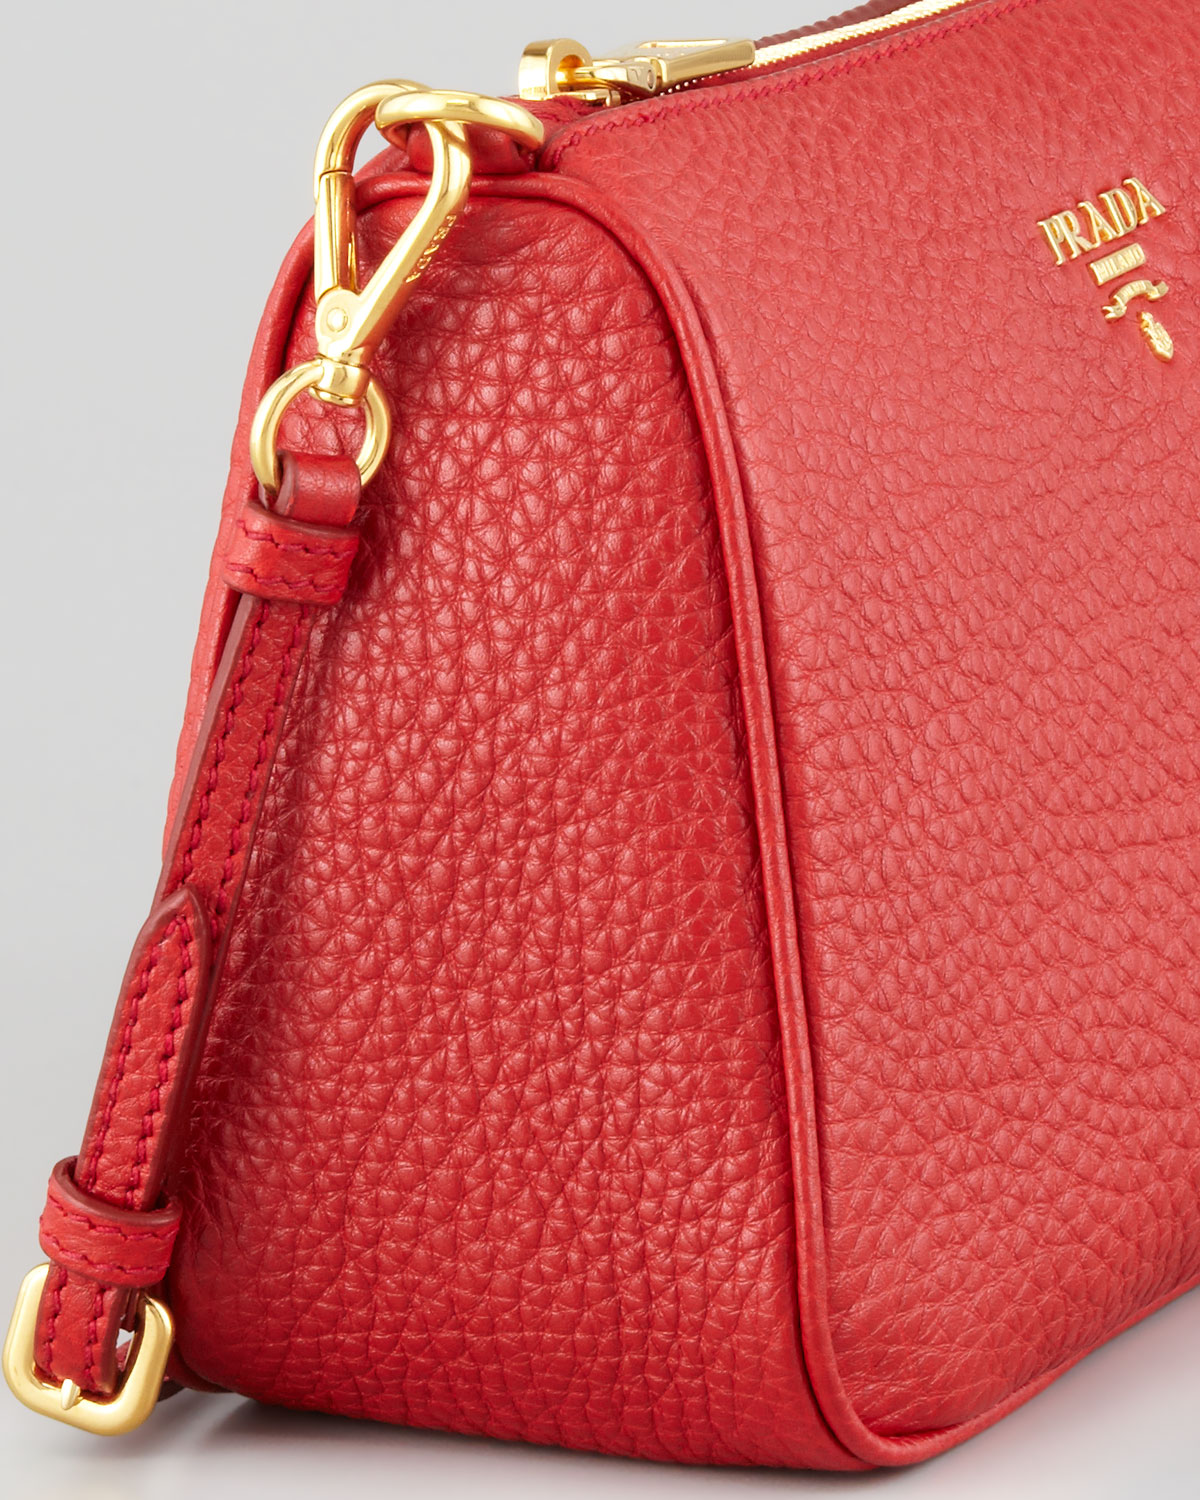 5fec8ae97eed ... best lyst prada daino small shoulder bag in red 24c73 ce71e